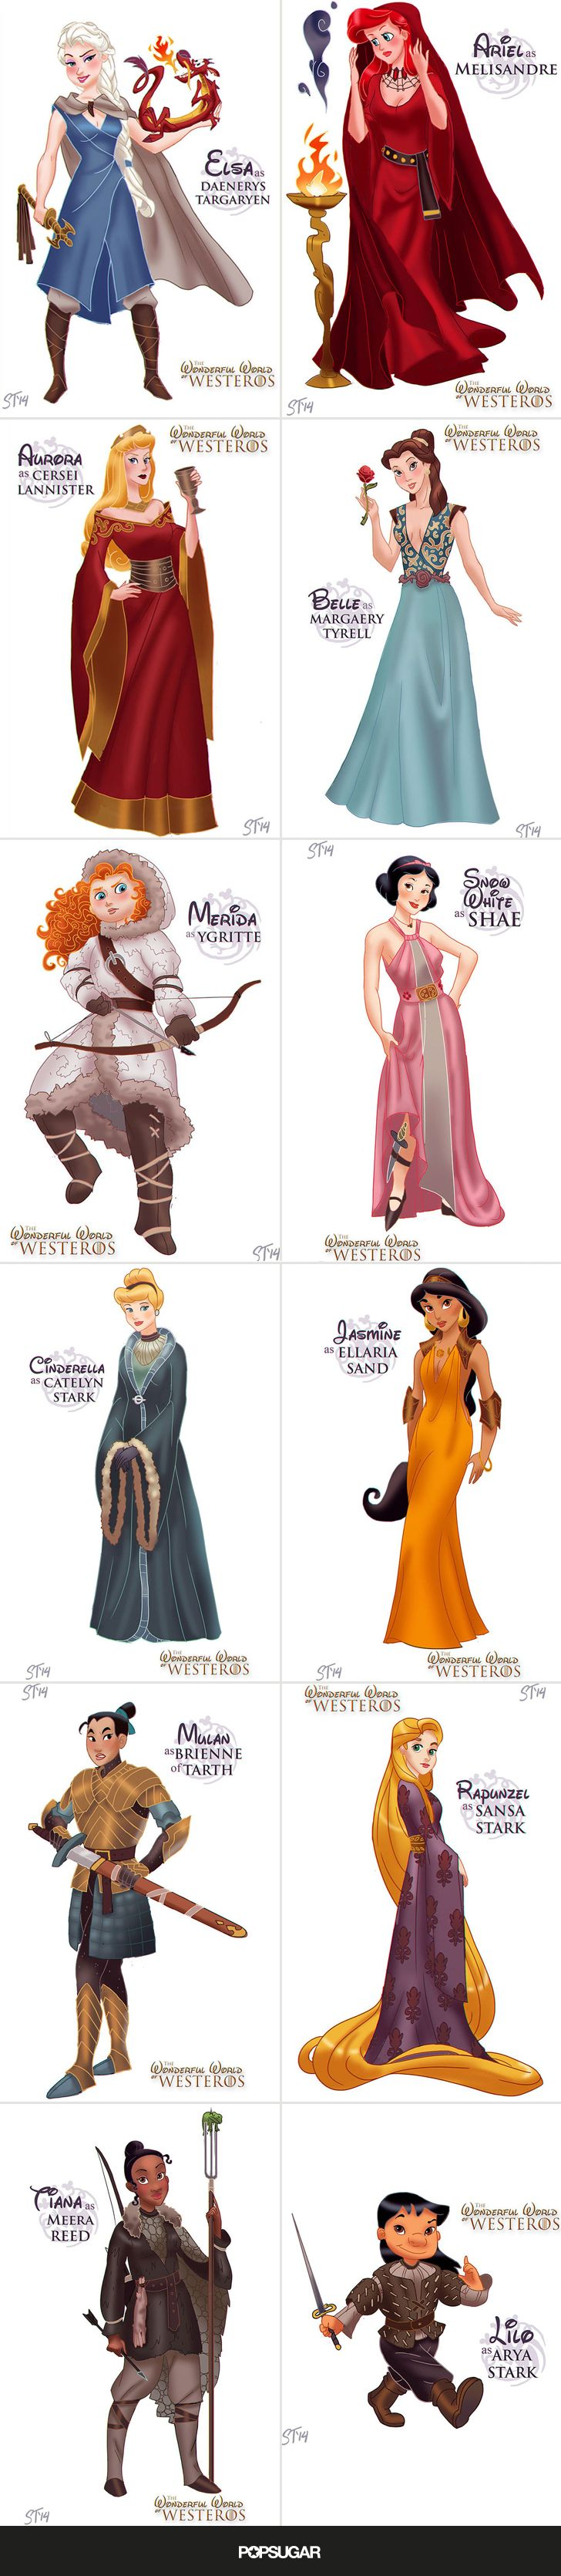 Disney Princesses as the Women of Game of Thrones omg this is cool